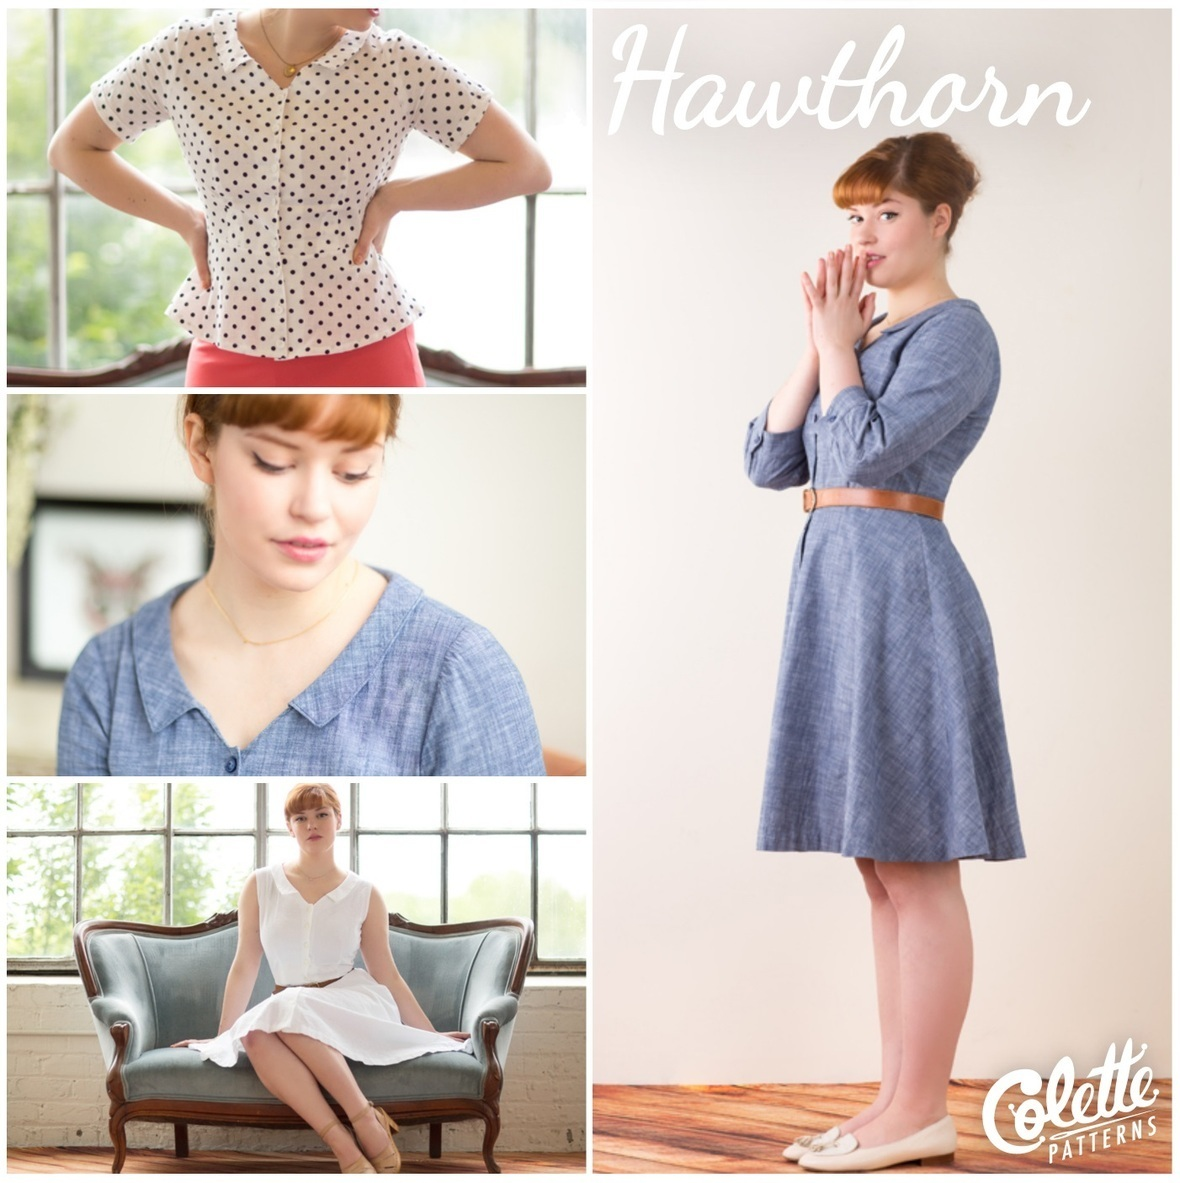 colette patterns hawthorn dress and blouse sewing pattern